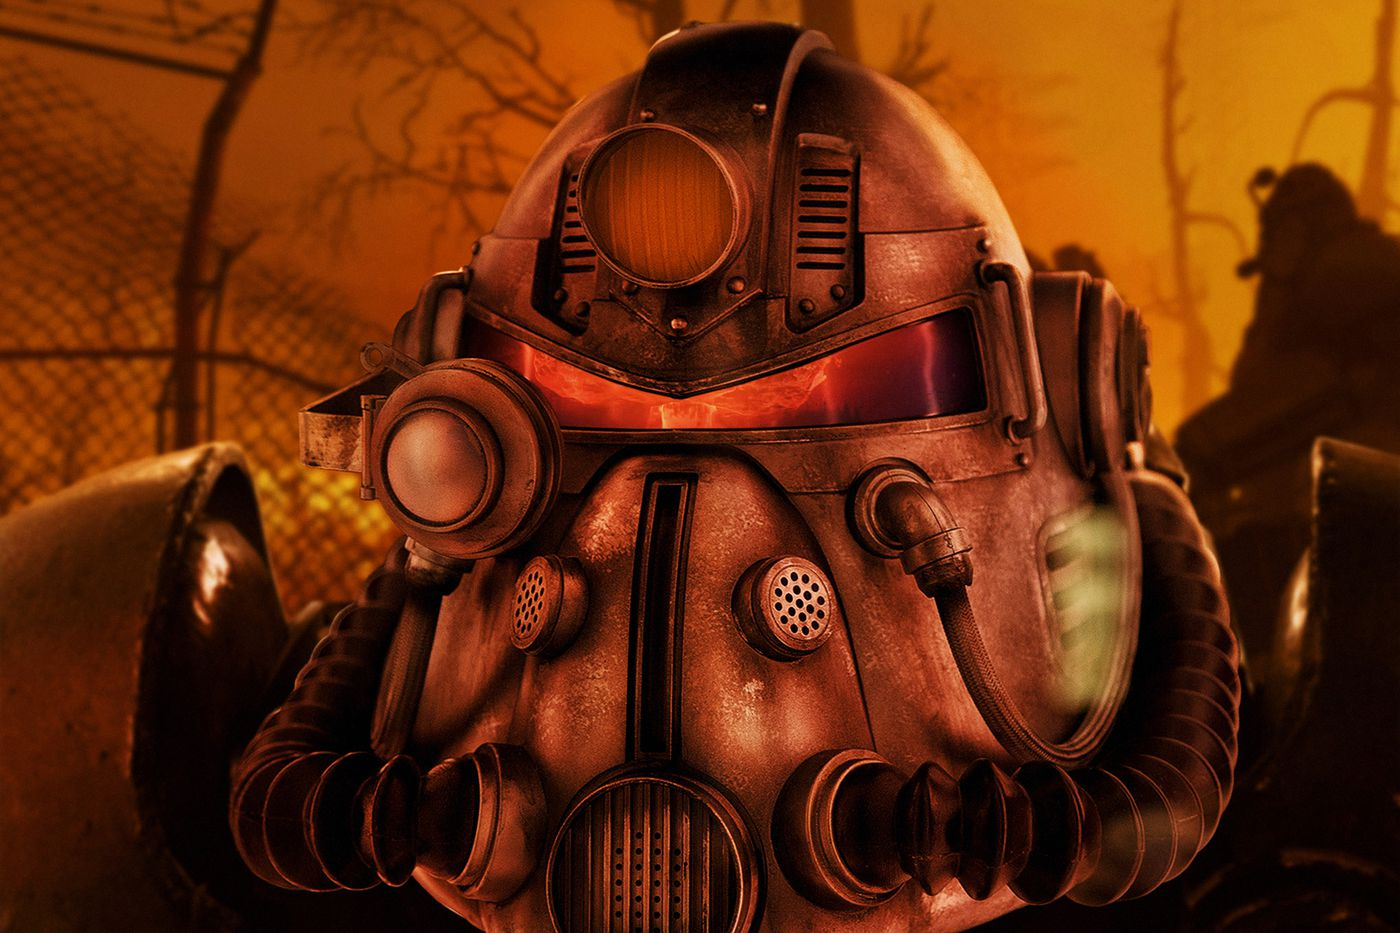 Fallout 76 is in a bad place, and Bethesda may not be able to fix it